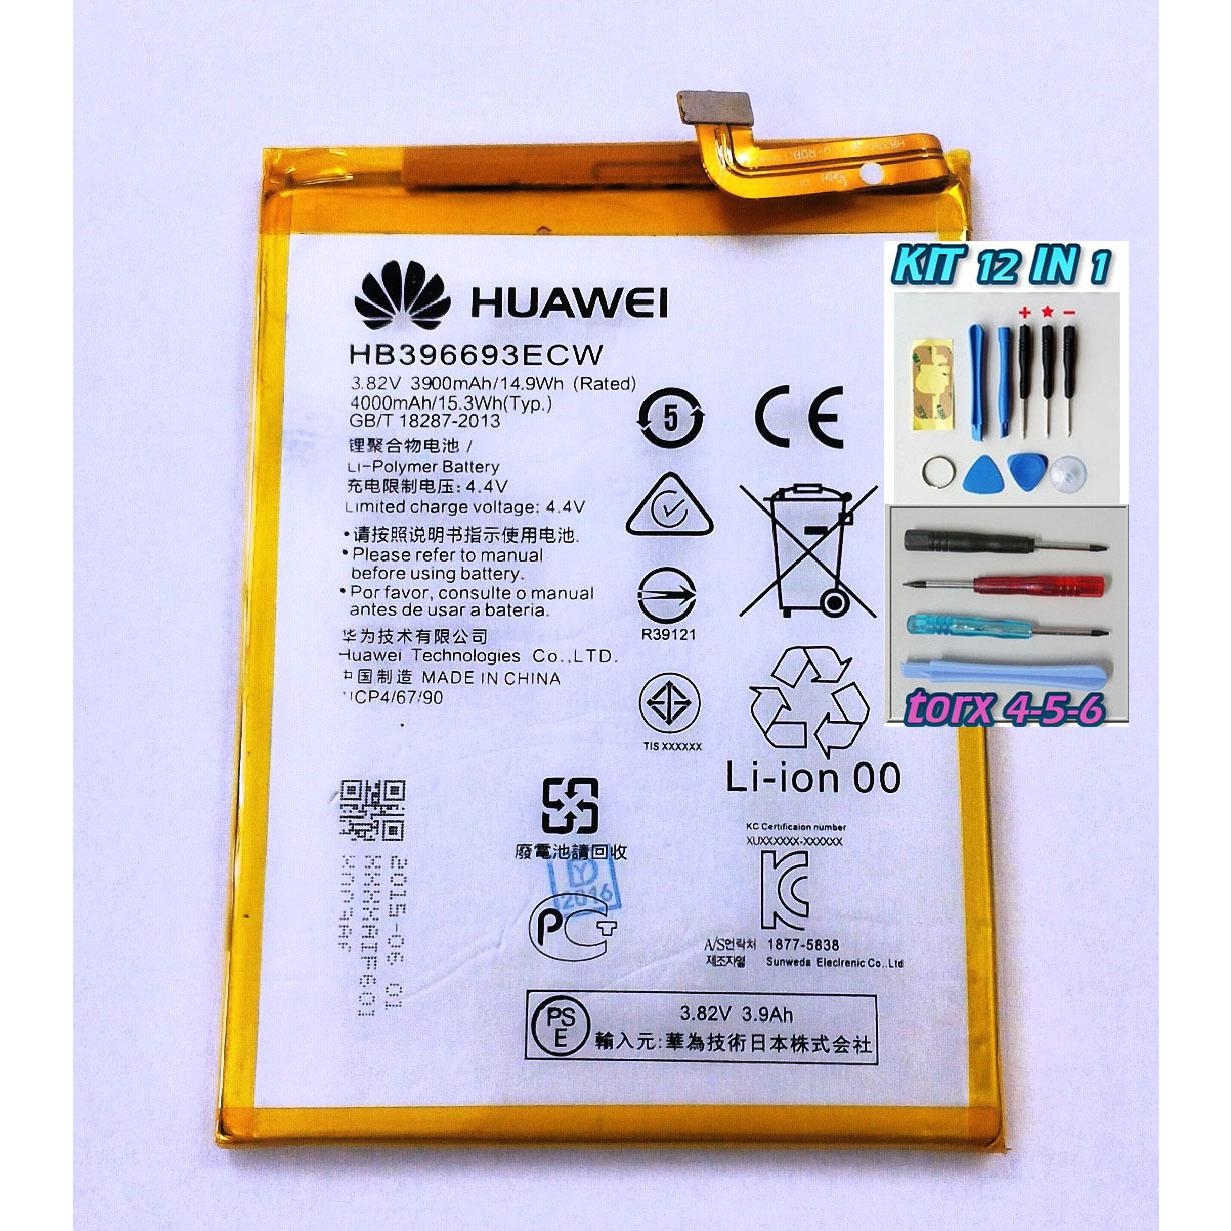 Batteria originale PER HUAWEI ASCEND MATE 8 HB396693ECW DA 3900 mAh+kit 12 in 1 e biadesivo